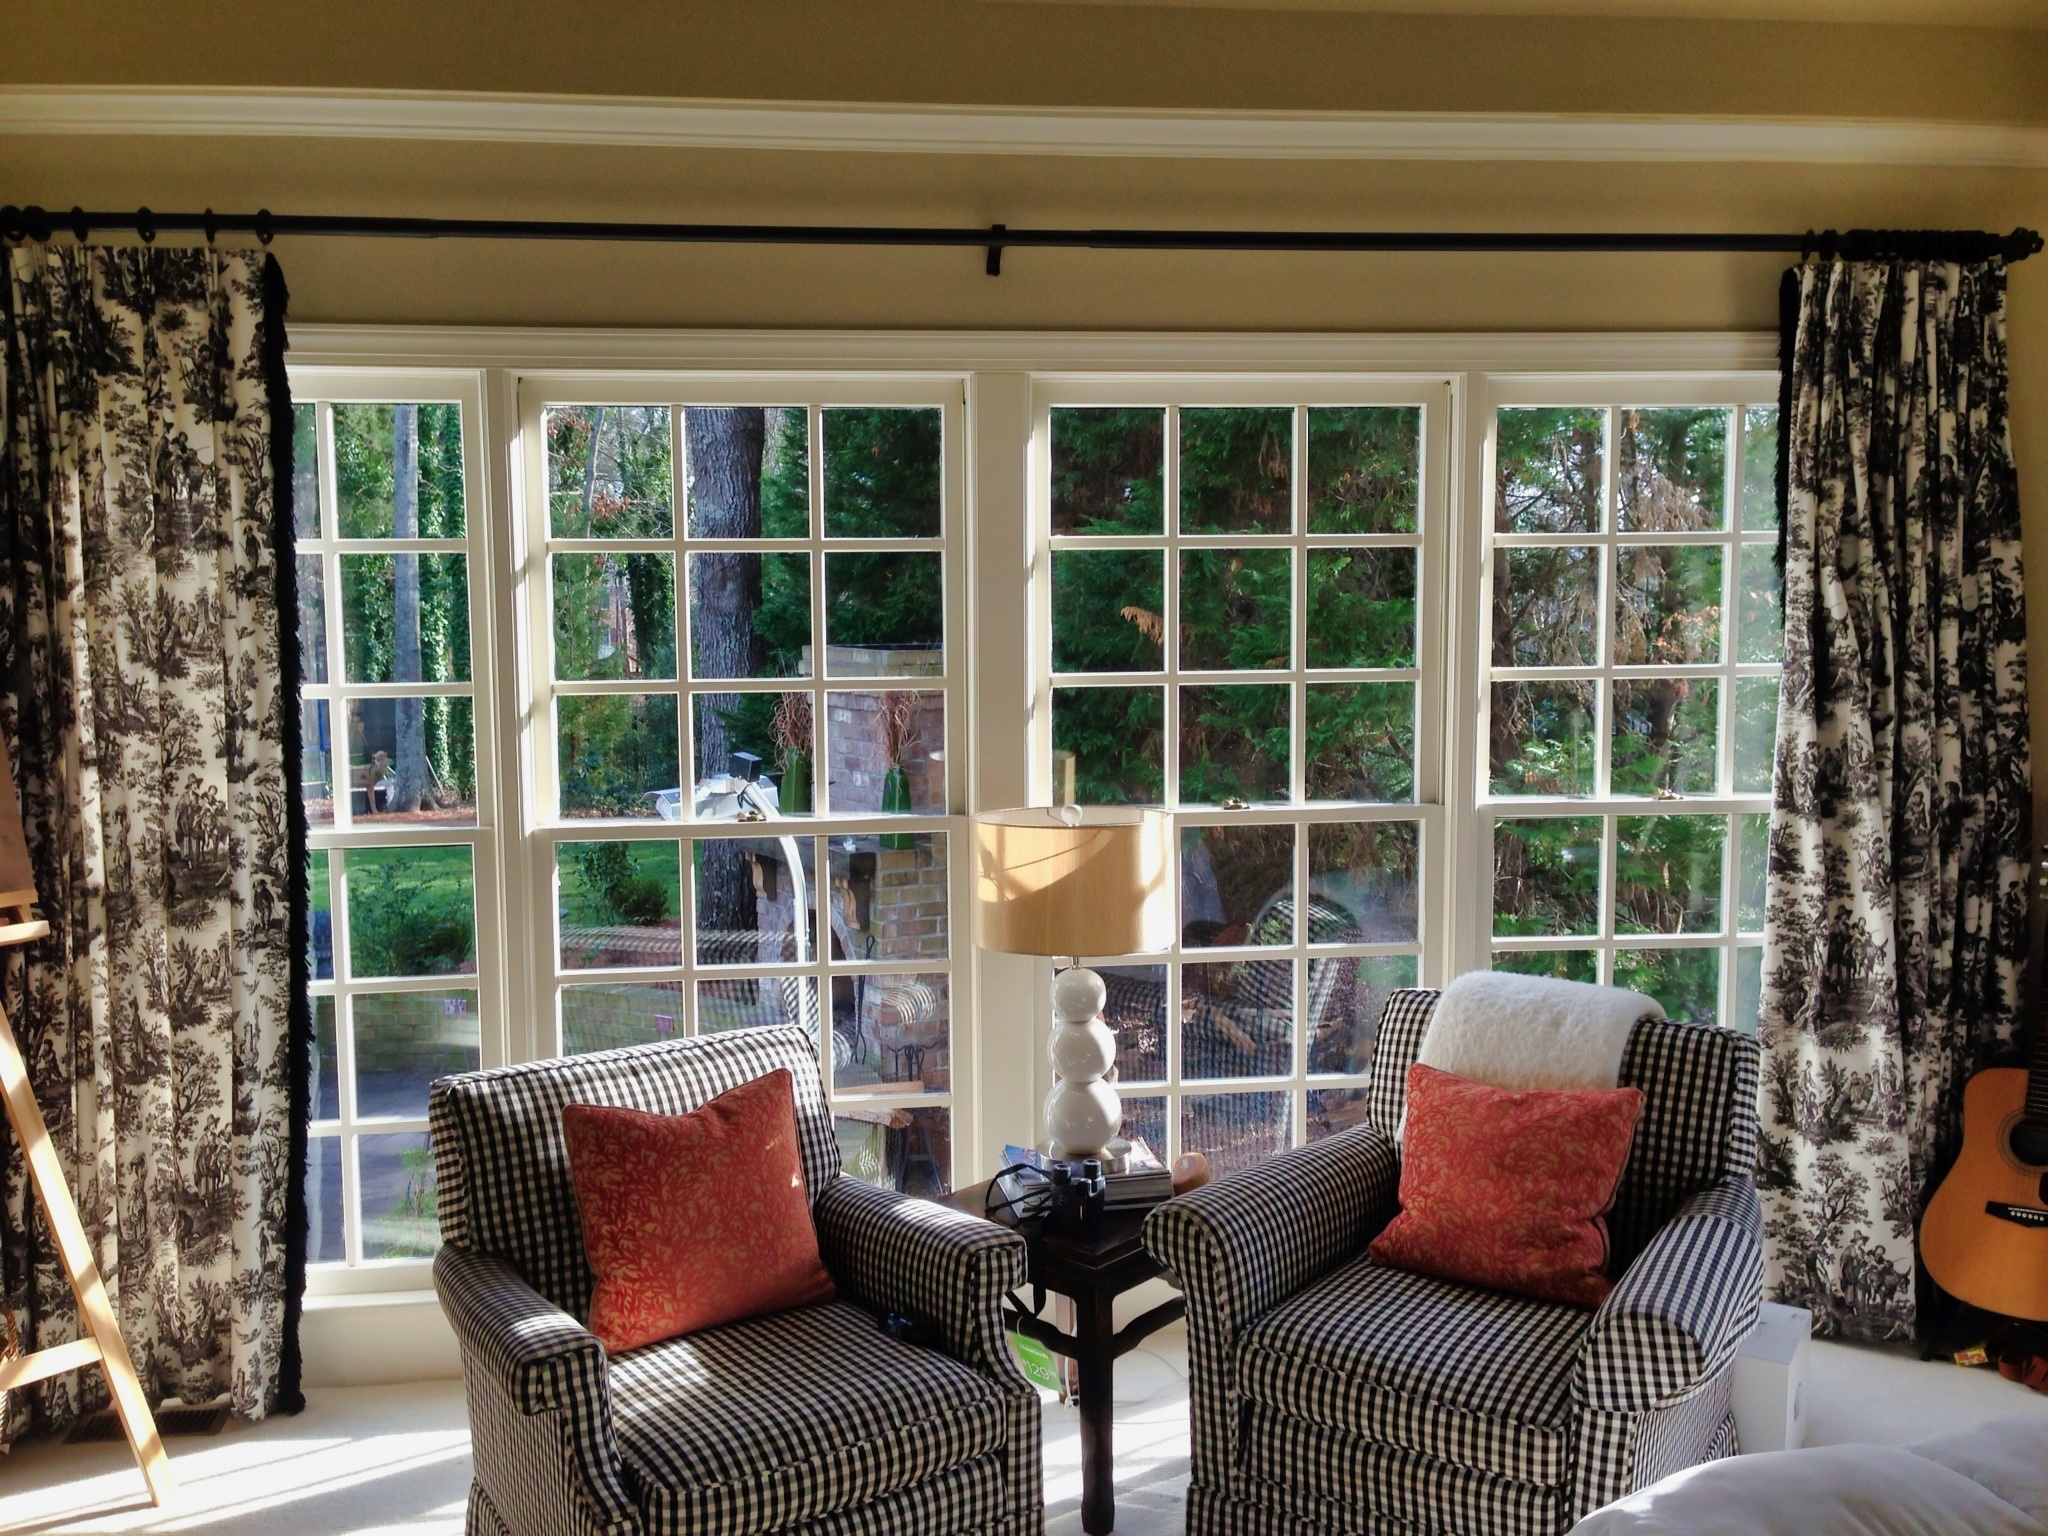 A bright living room with large pane windows.